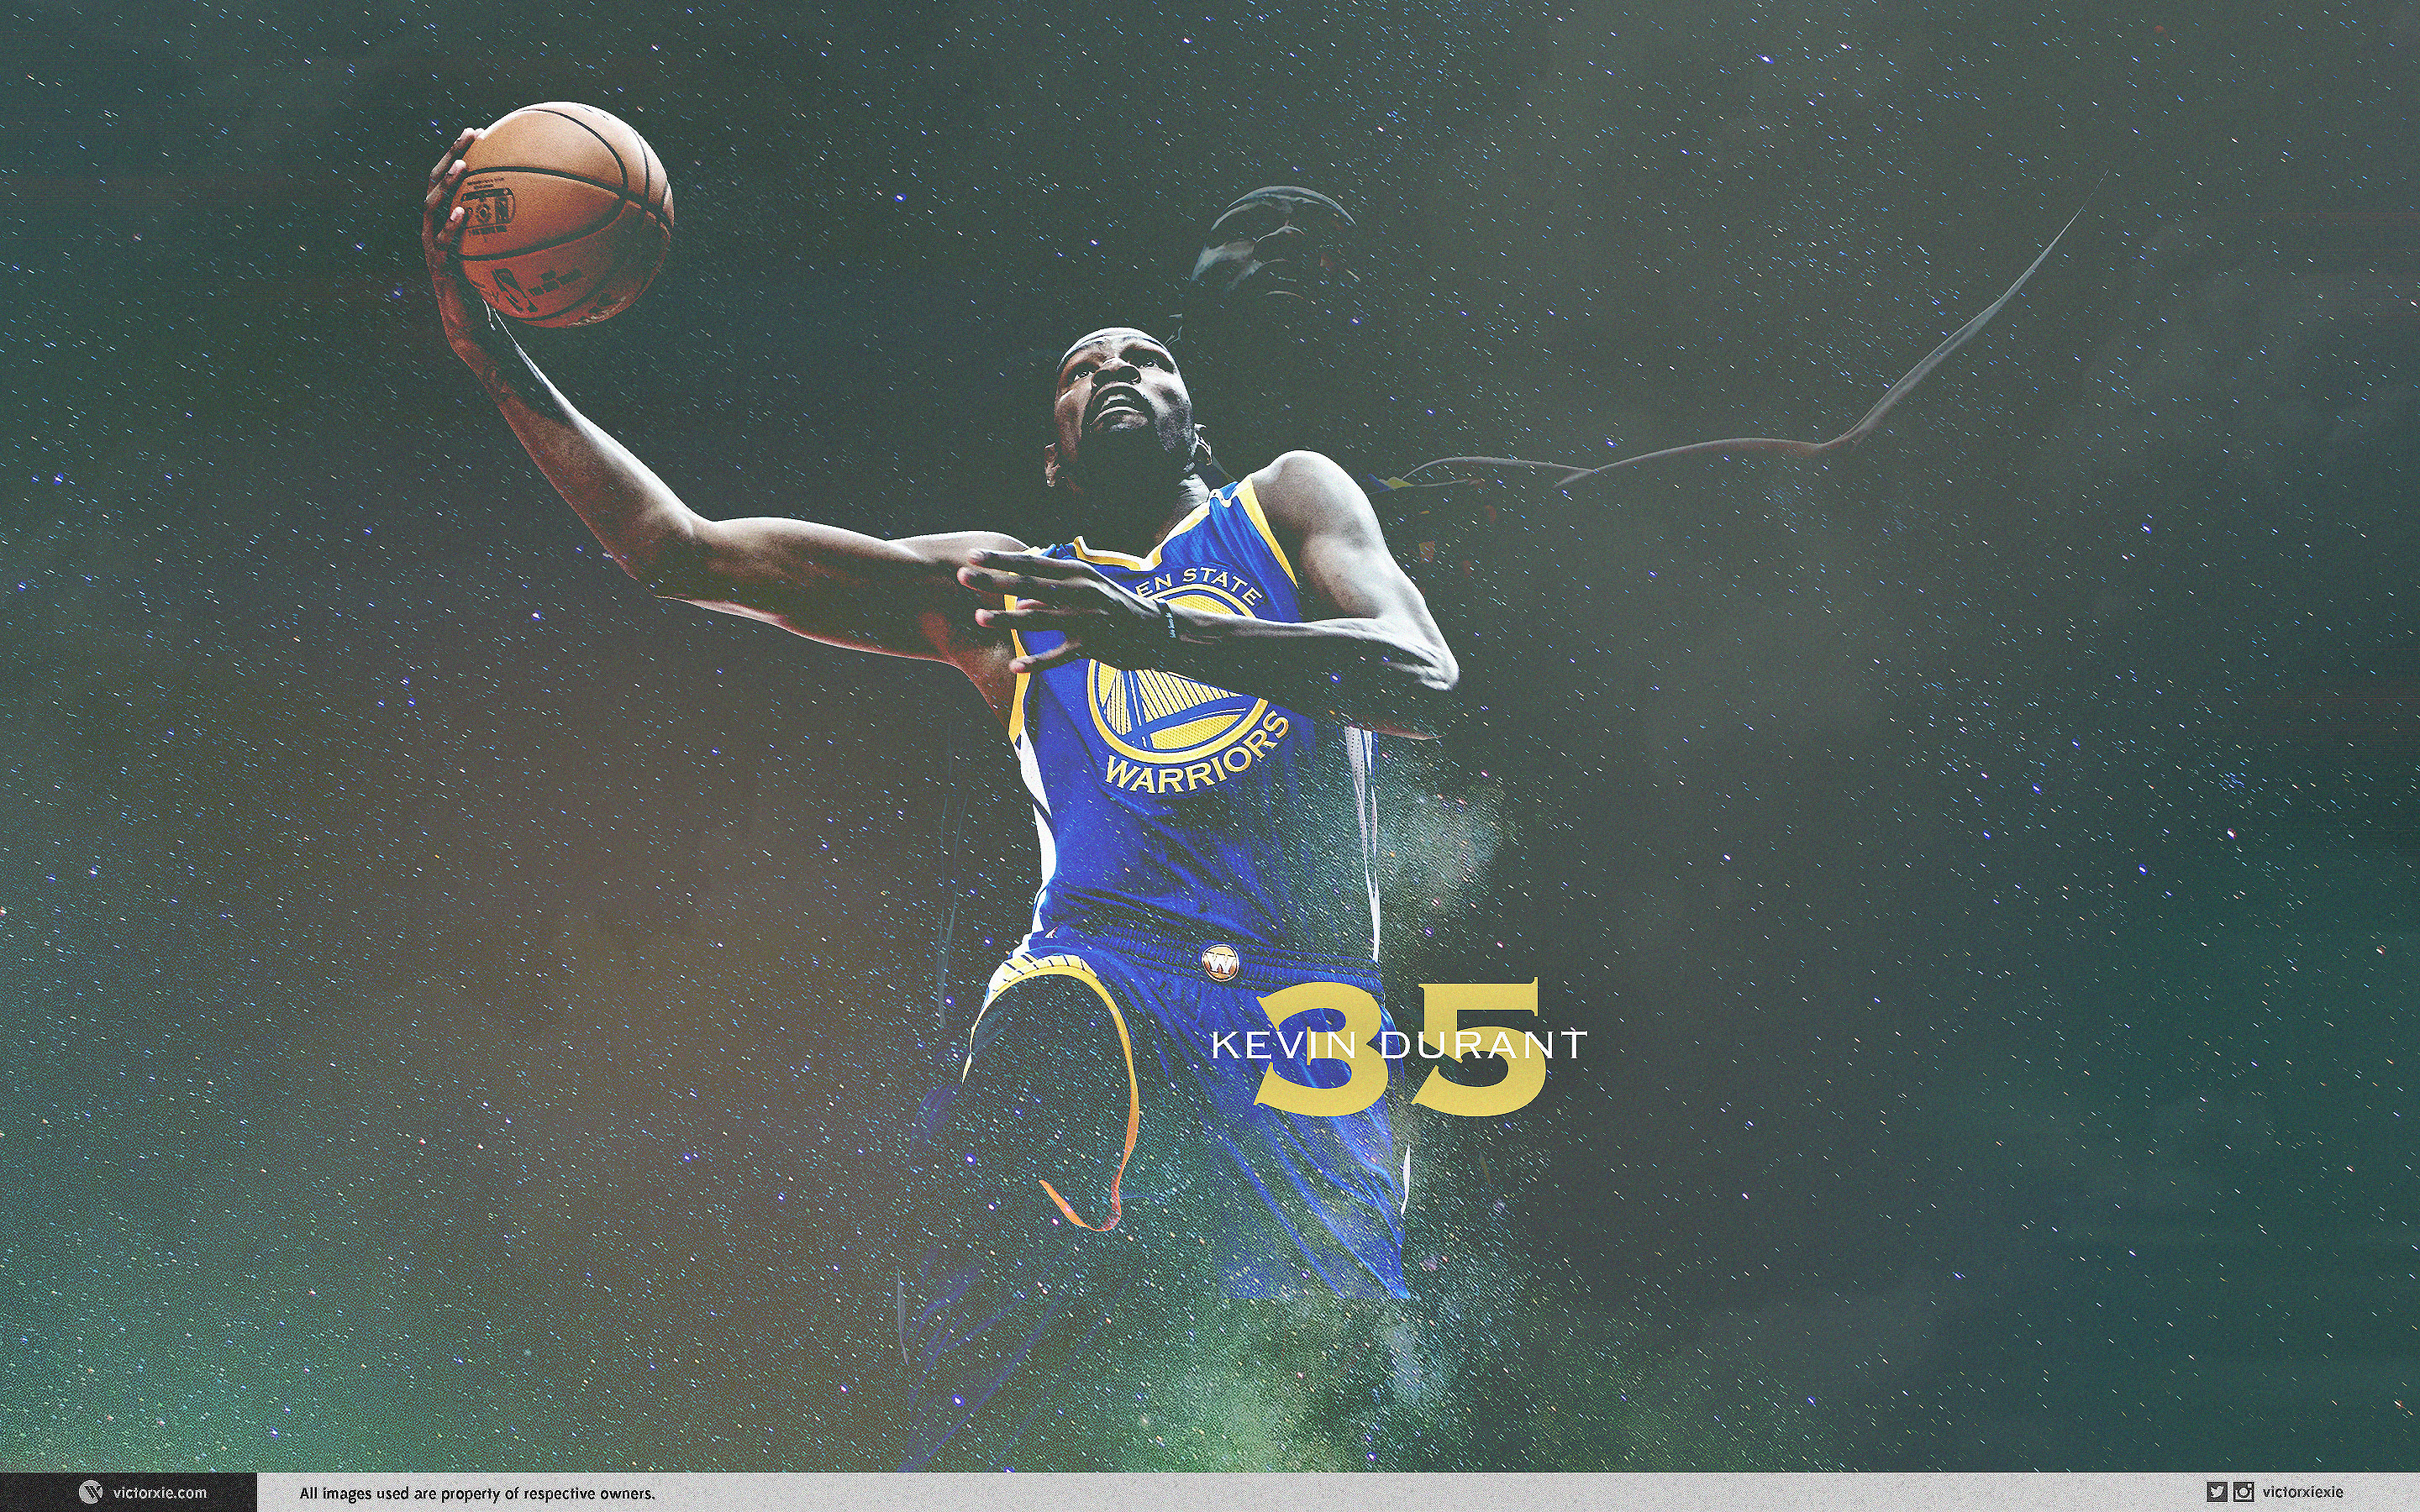 Res: 2880x1800, Kevin Durant Wallpaper Golden Gate Warriors 1